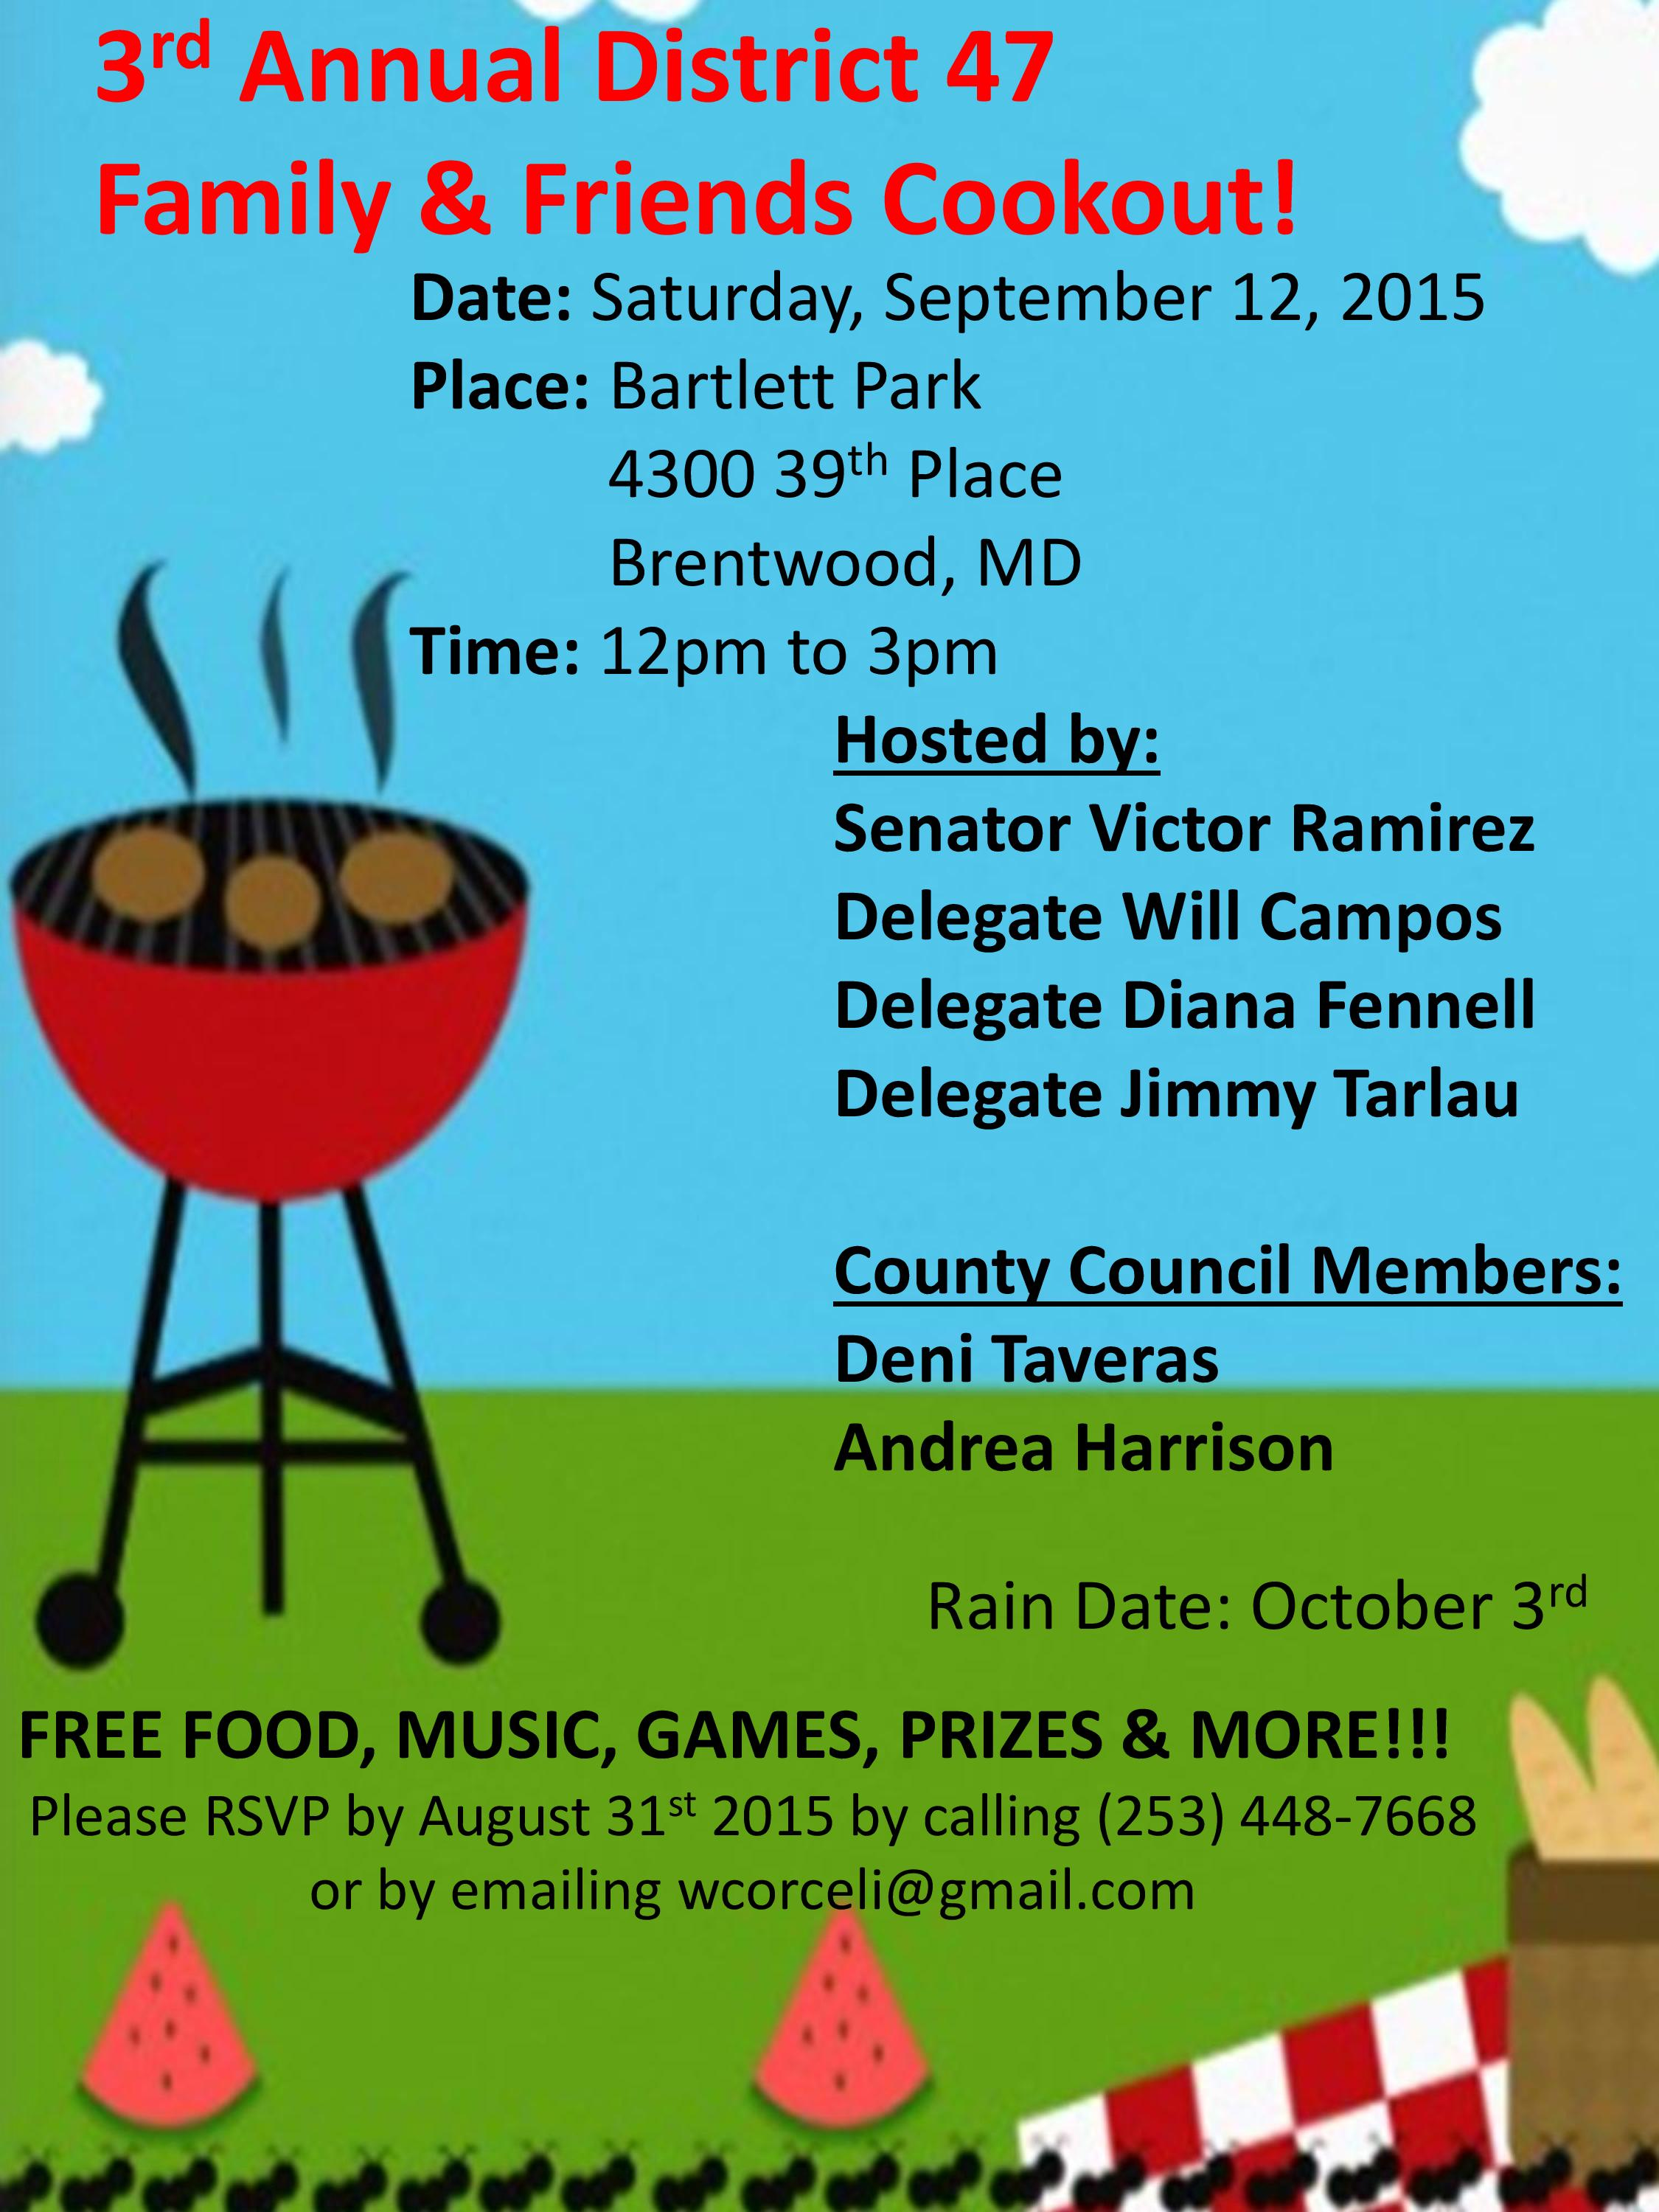 JOIN DELEGATE FENNELL & THE DISTRICT 47 TEAM NEXT SATURDAY 9/12 !